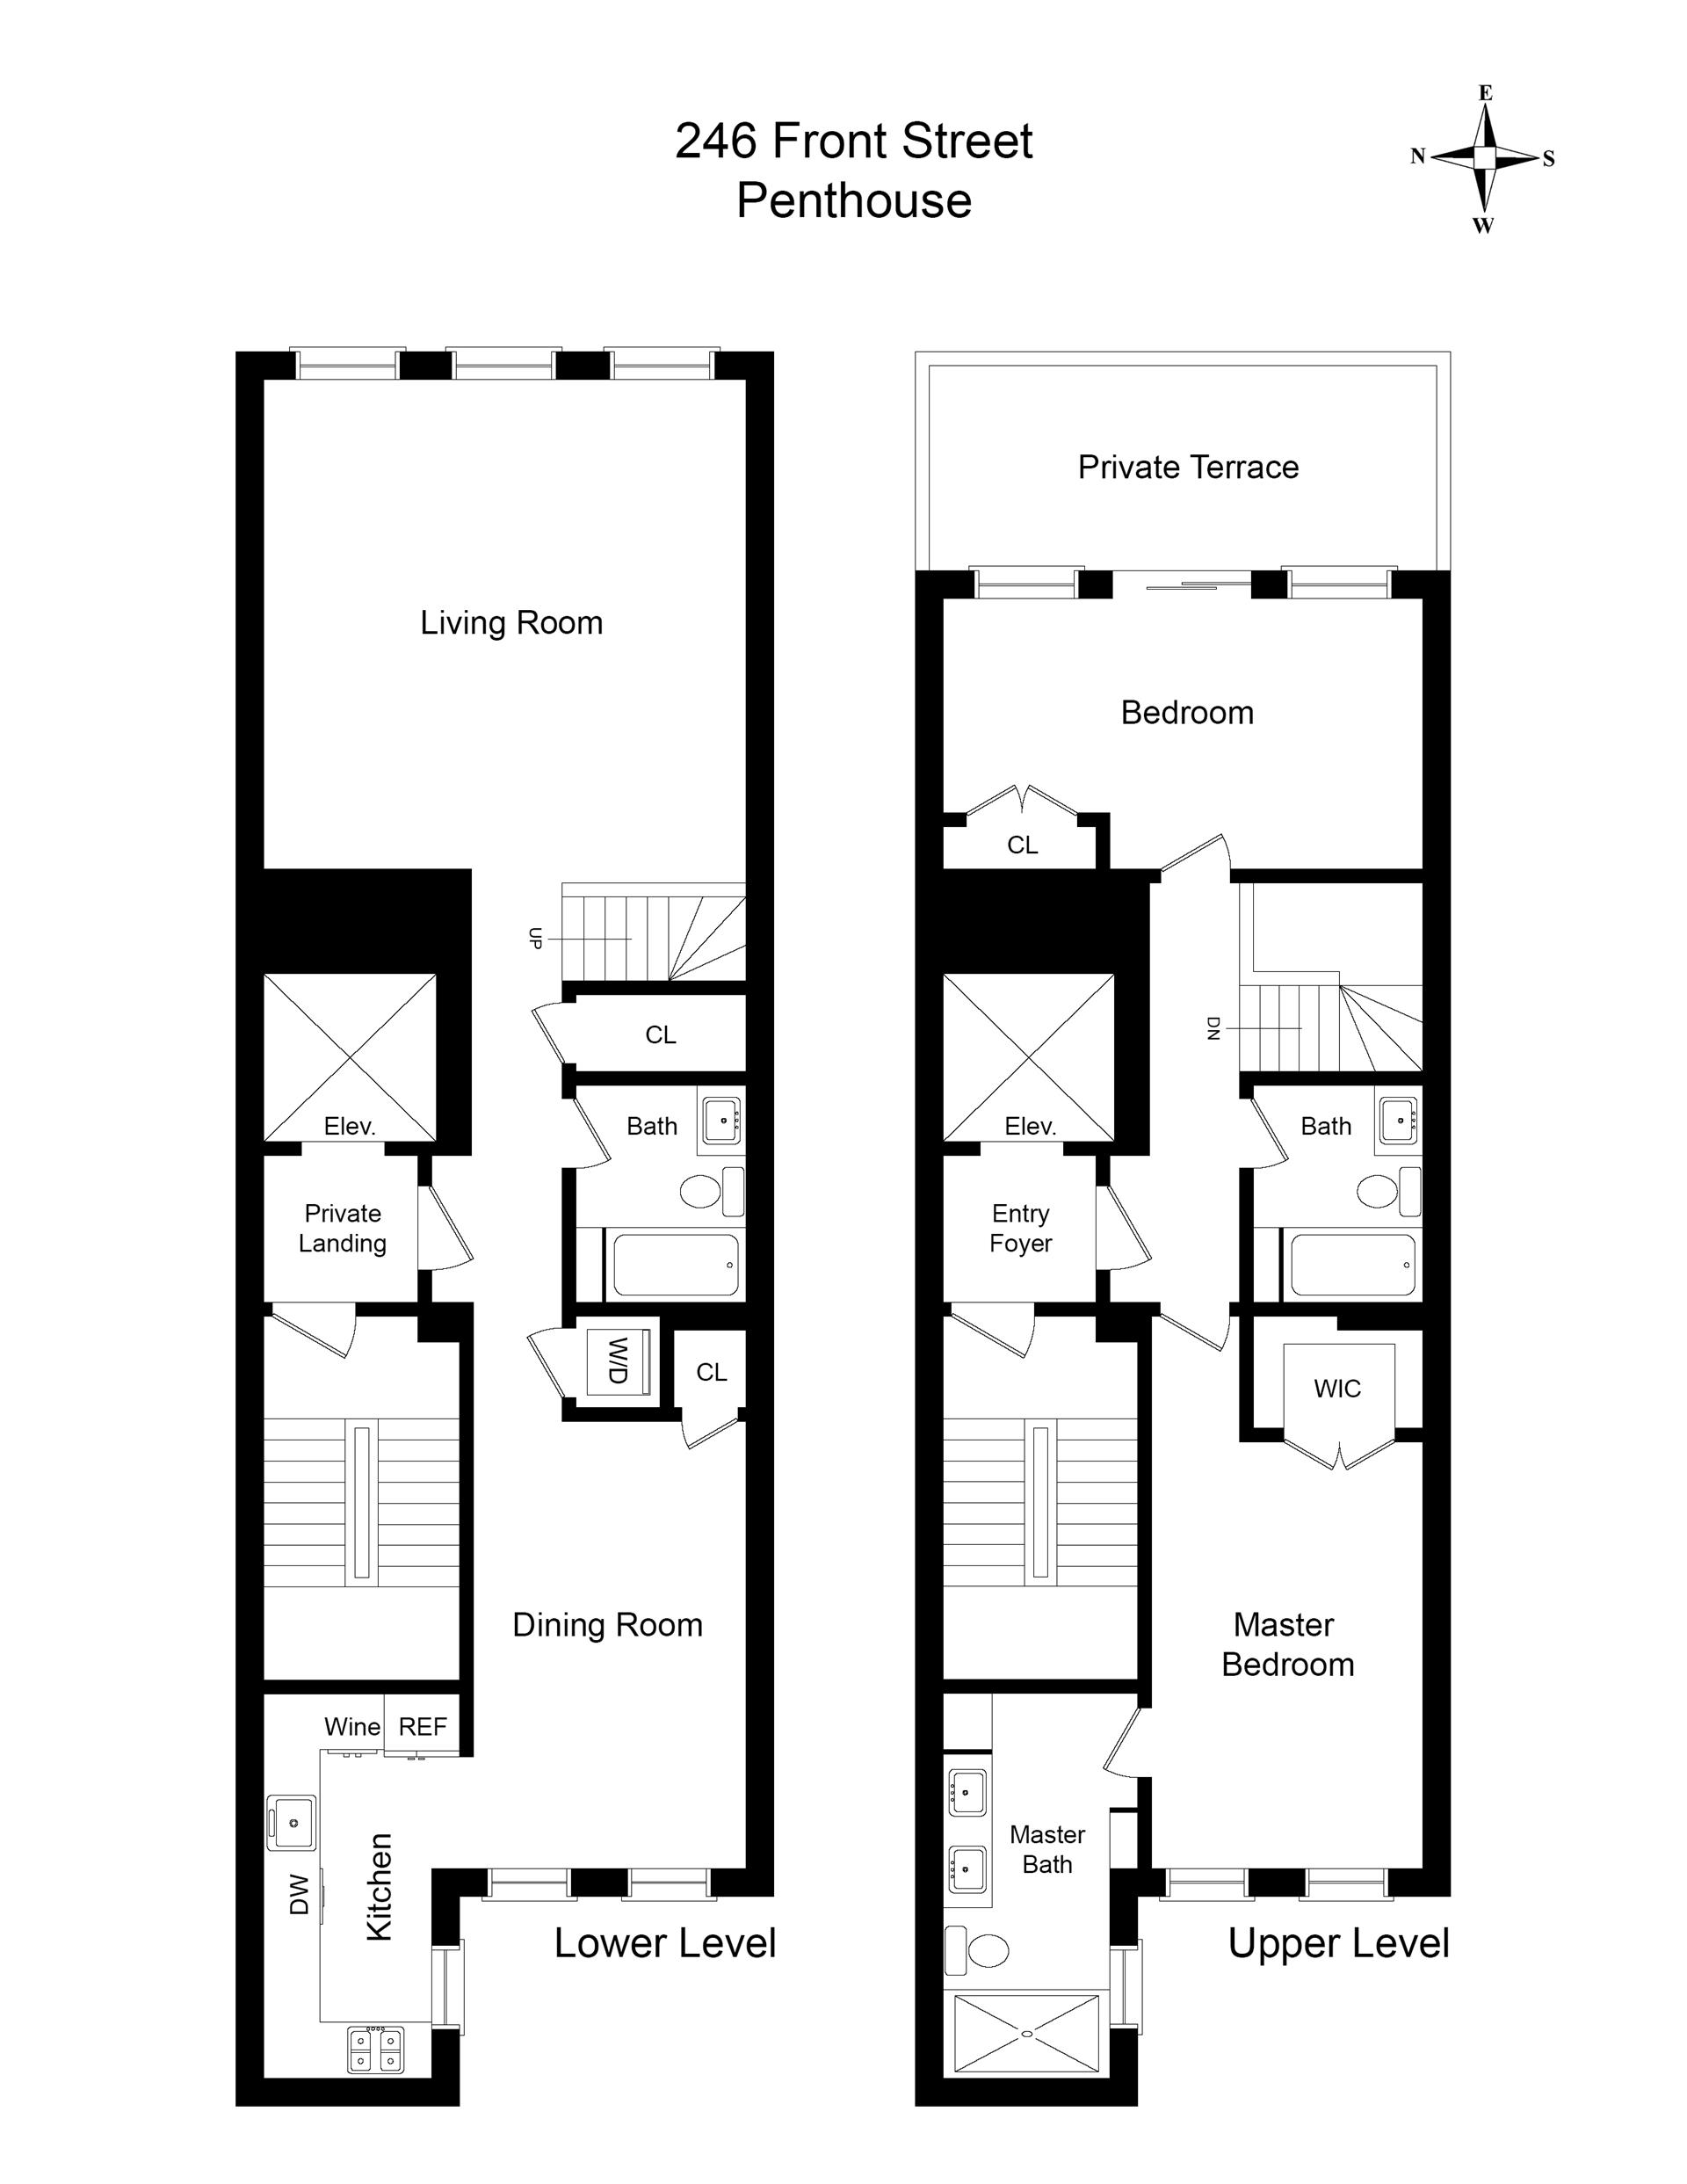 Floor plan of 246 Front St, PH - South St. Sea Port, New York